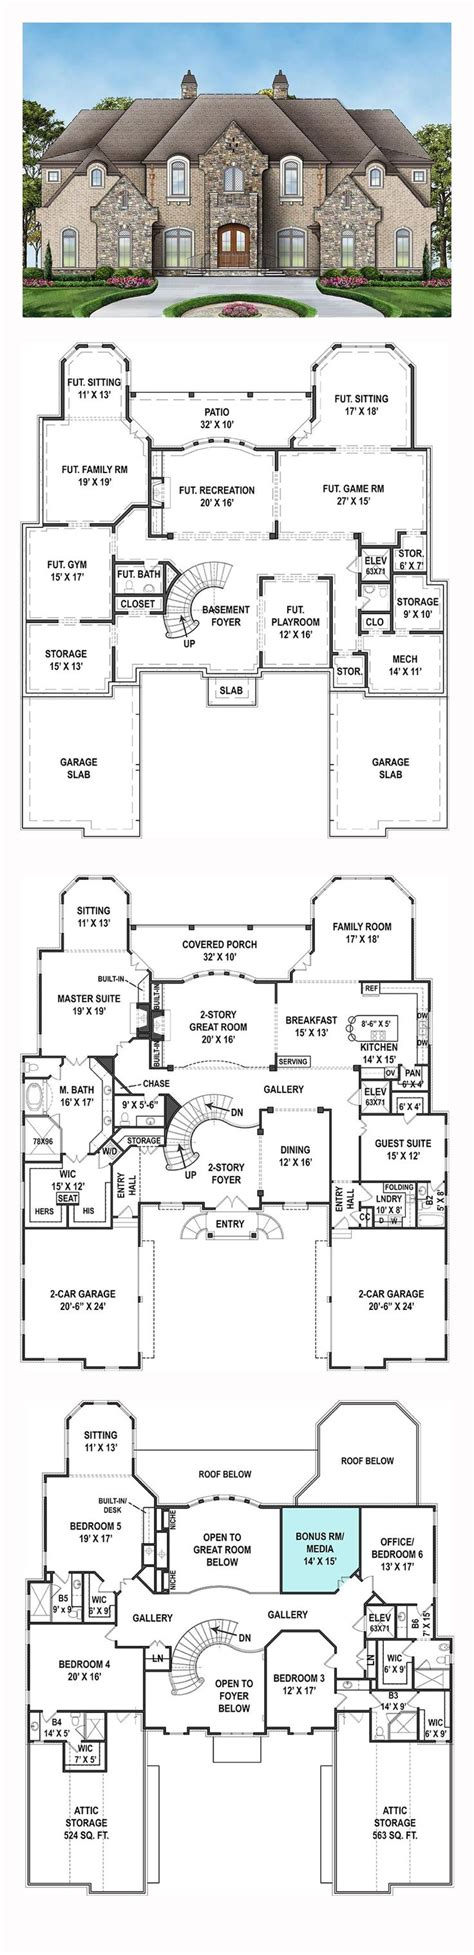 spelling mansion floor plan spelling manor floor plan sensational best mansion bedroom ideas on modern luxury